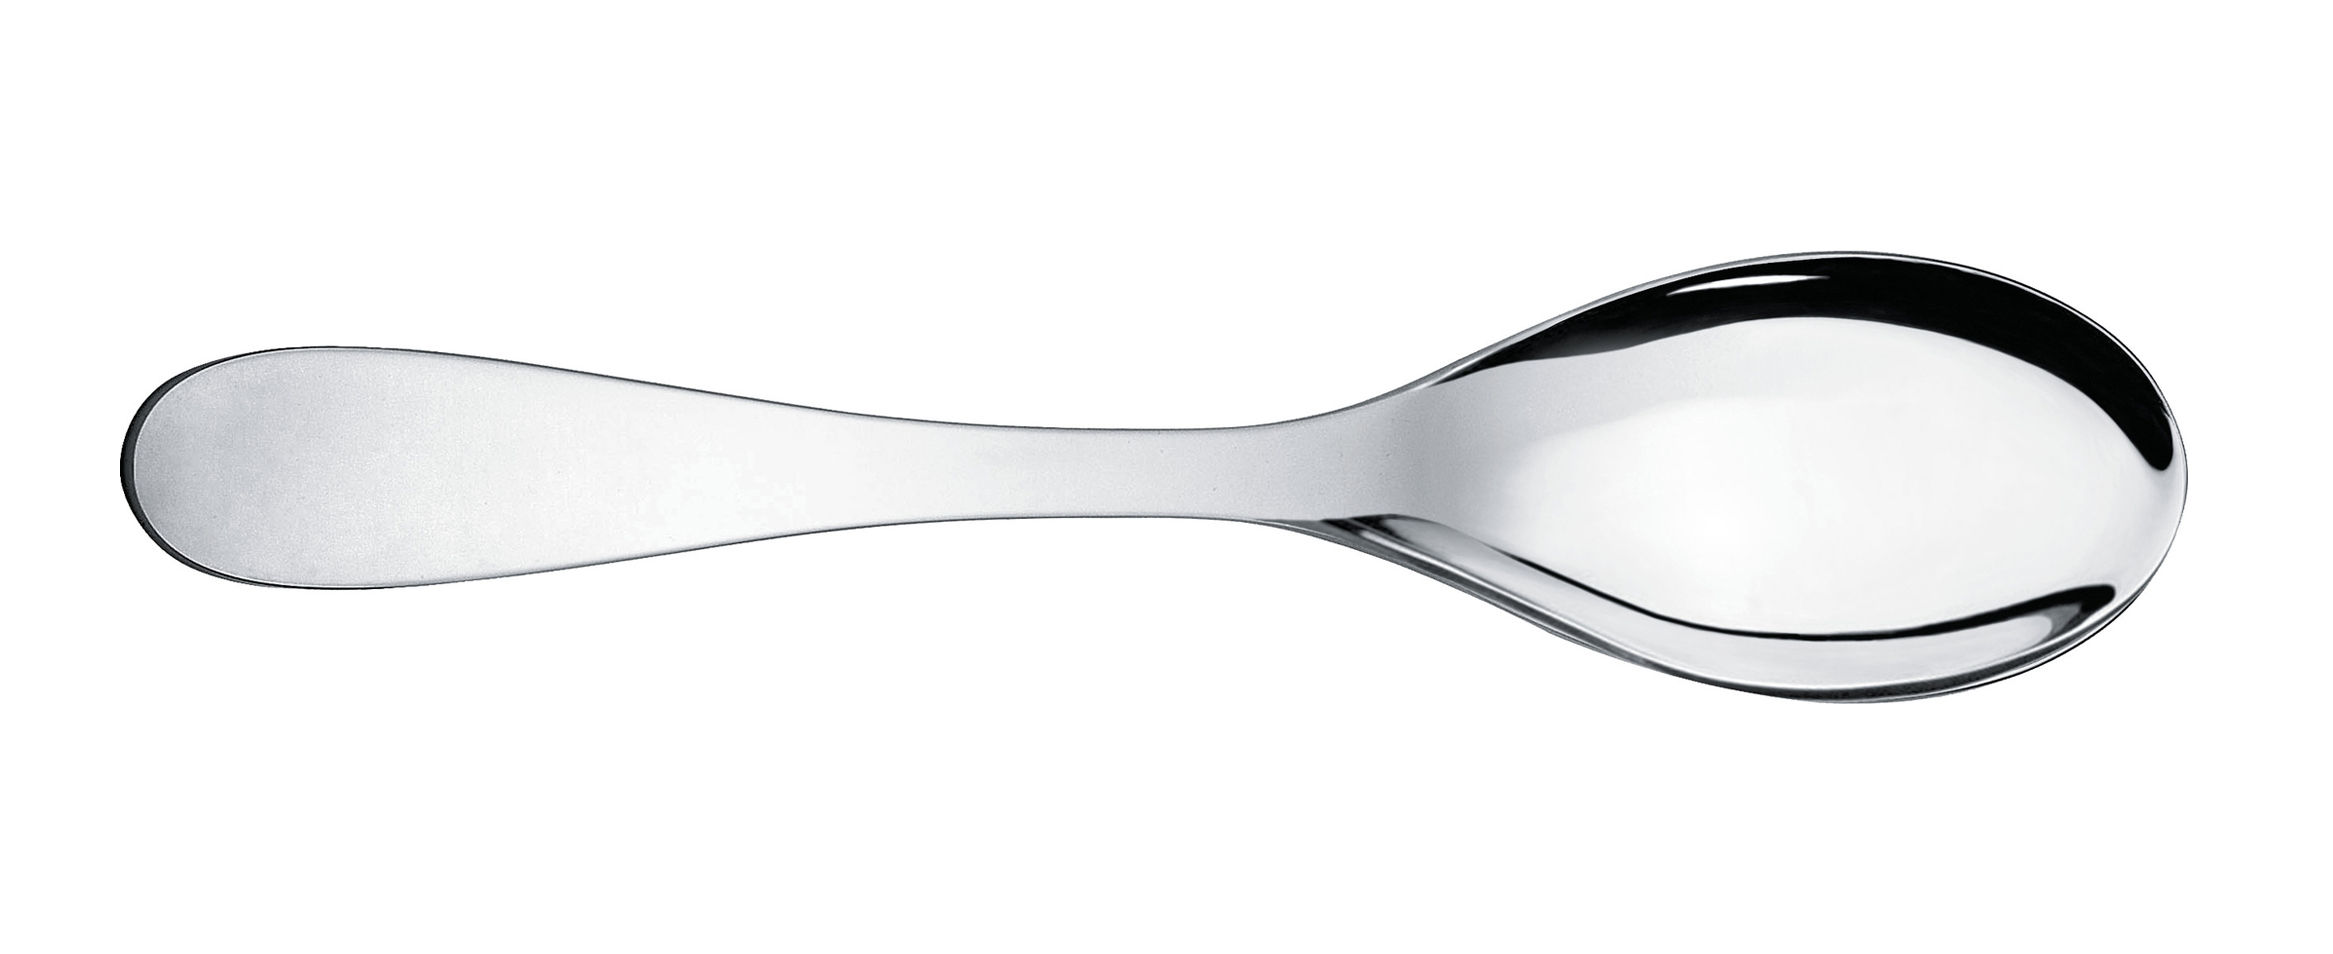 Tableware - Serving Cutlery - Eat.it Service spoon by Alessi - Polished metal - Stainless steel 18/10